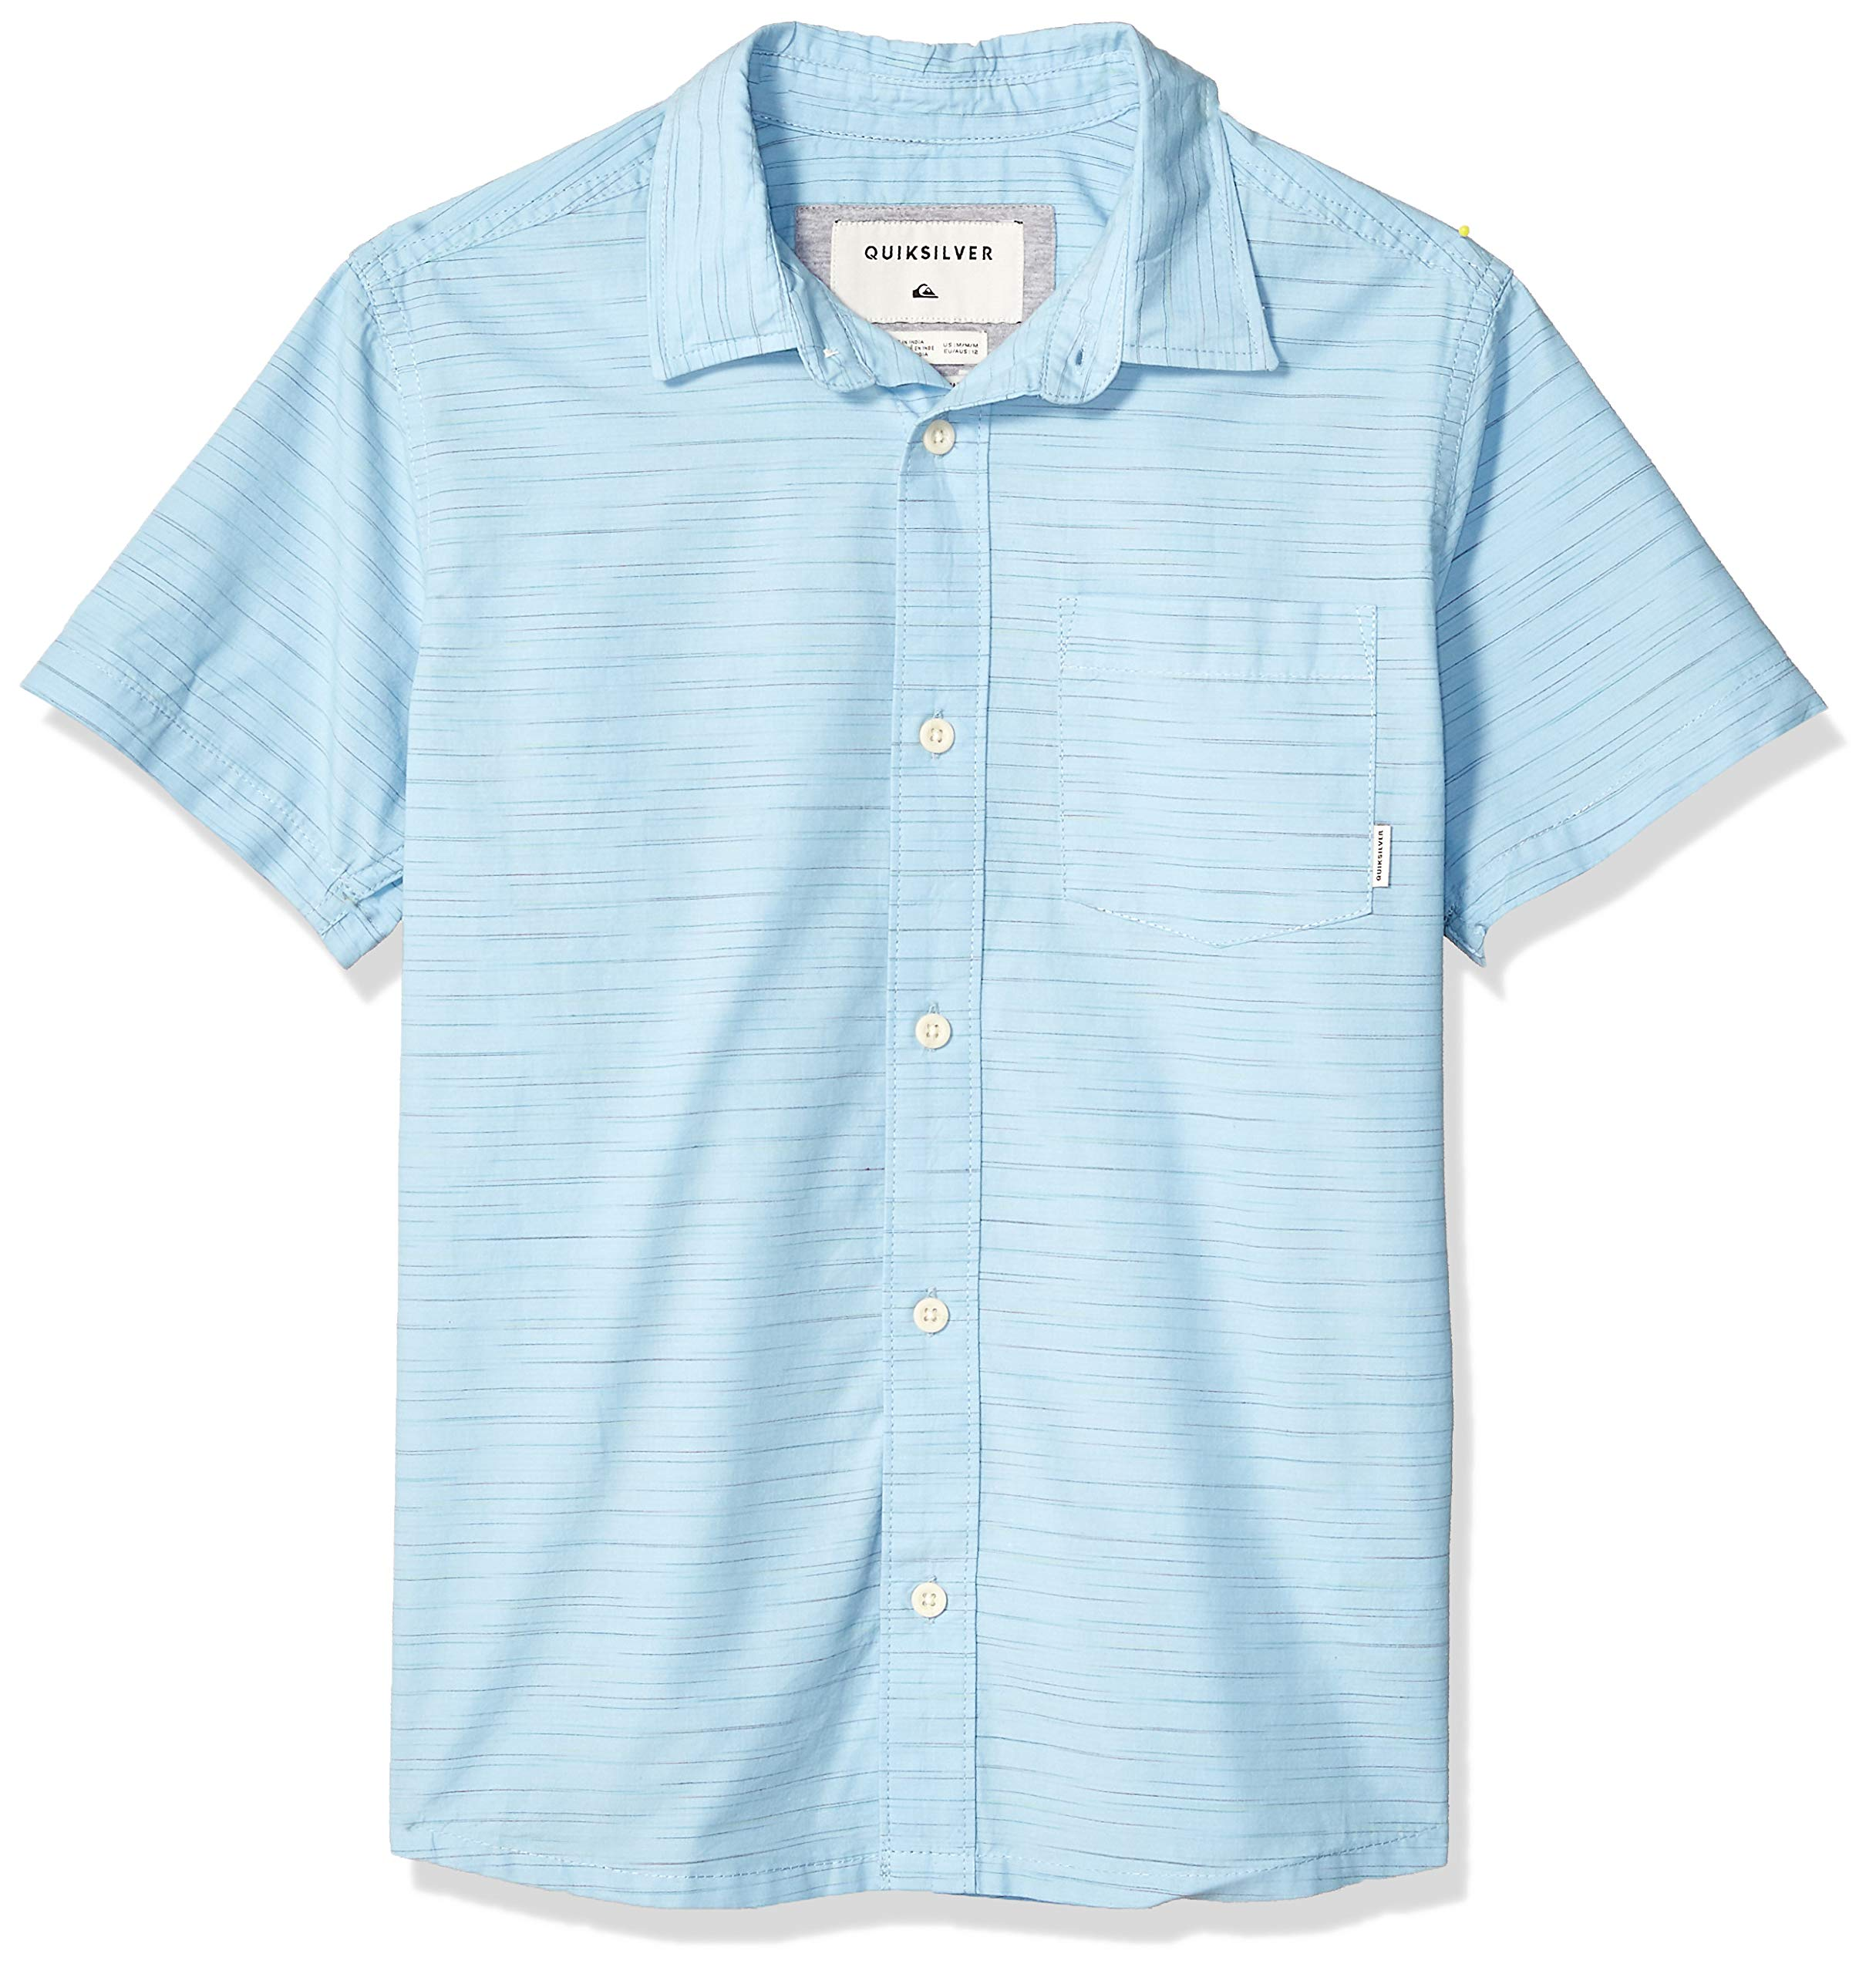 Quiksilver Boys' Big COOBER Croc Short Sleeve Youth Woven TOP, AIRY Blue, XL/16